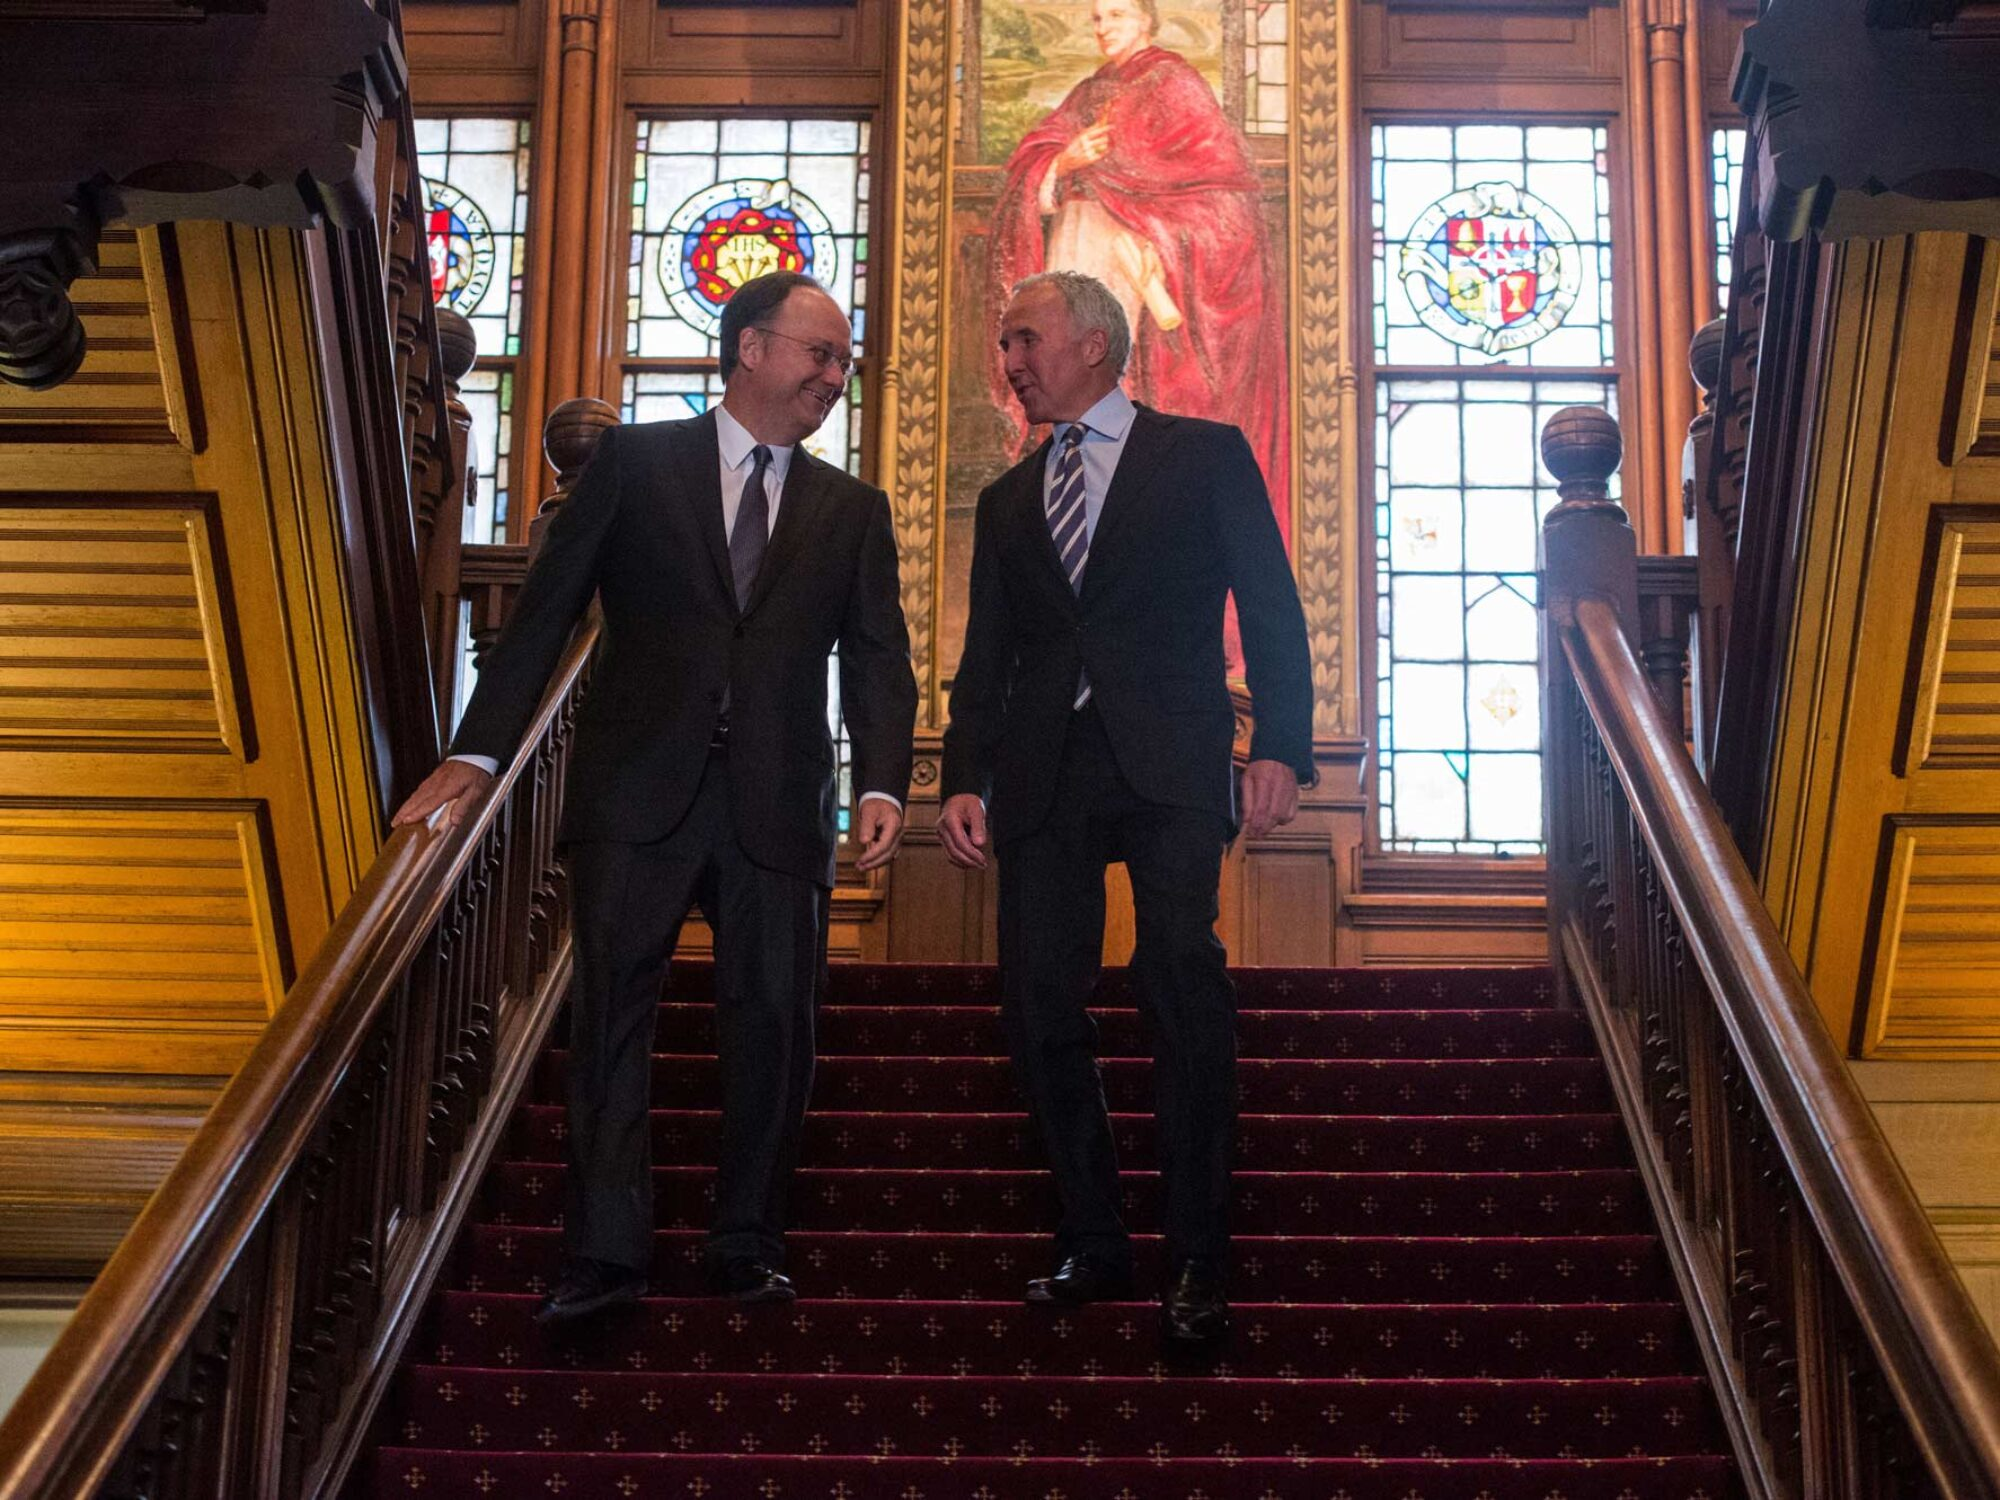 Georgetown University President DeGioia and Frank McCourt descending stairs in Healy Hall